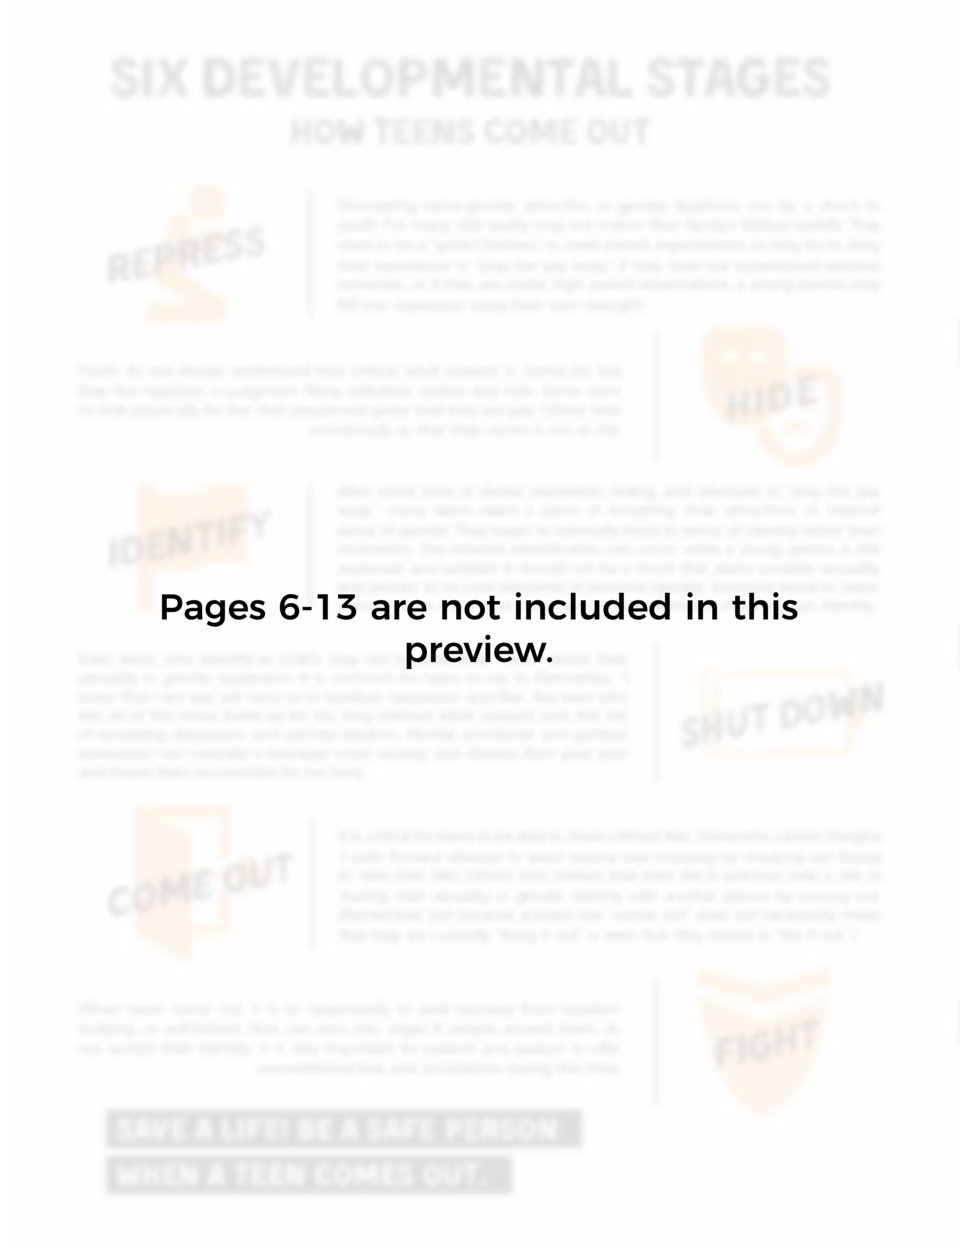 Pages 6-13 are not included in this preview.